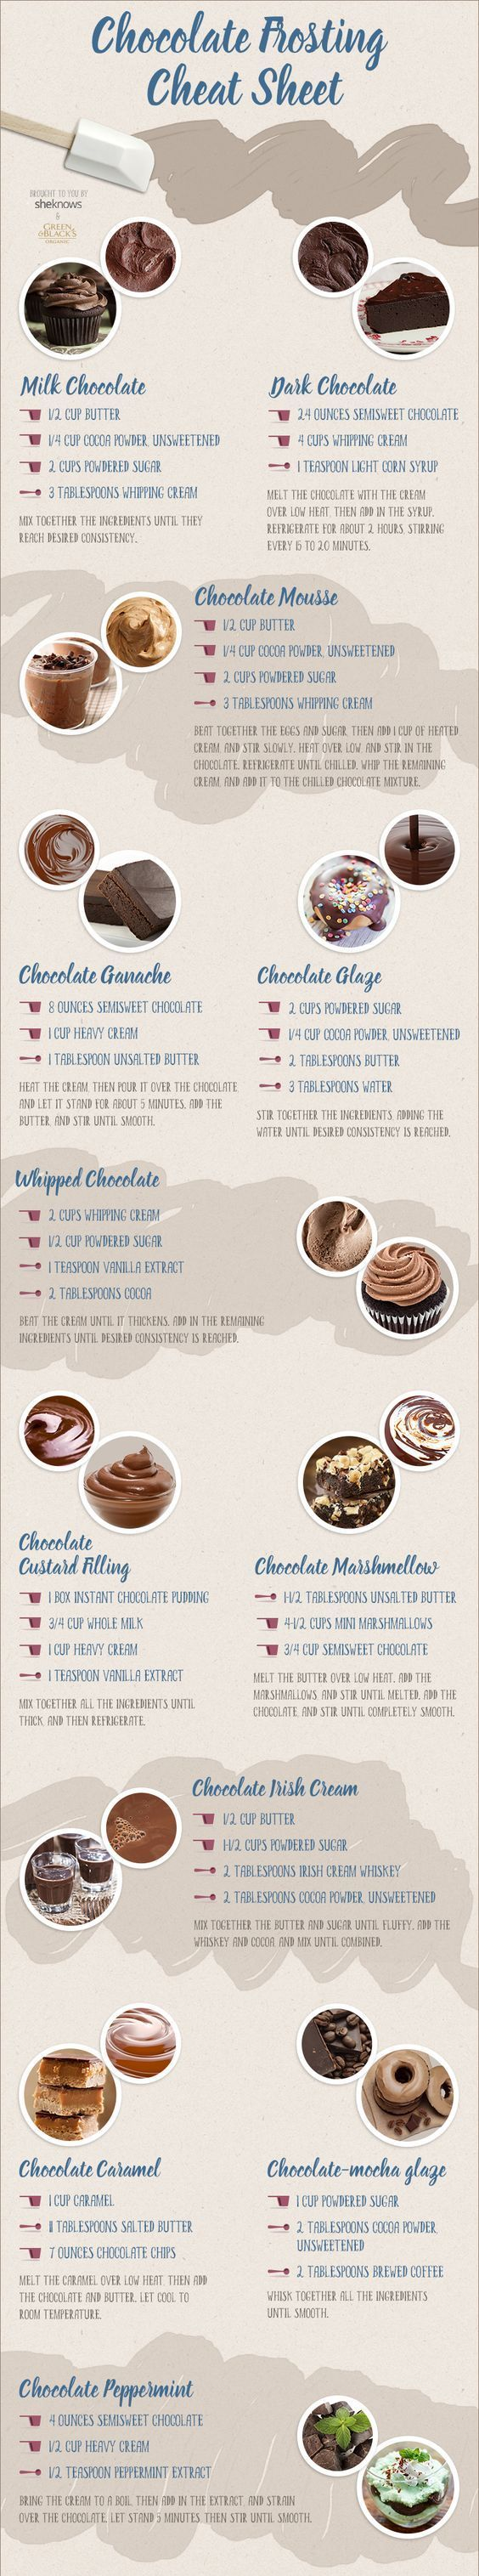 Best 25+ Chocolate icing recipes ideas only on Pinterest ...